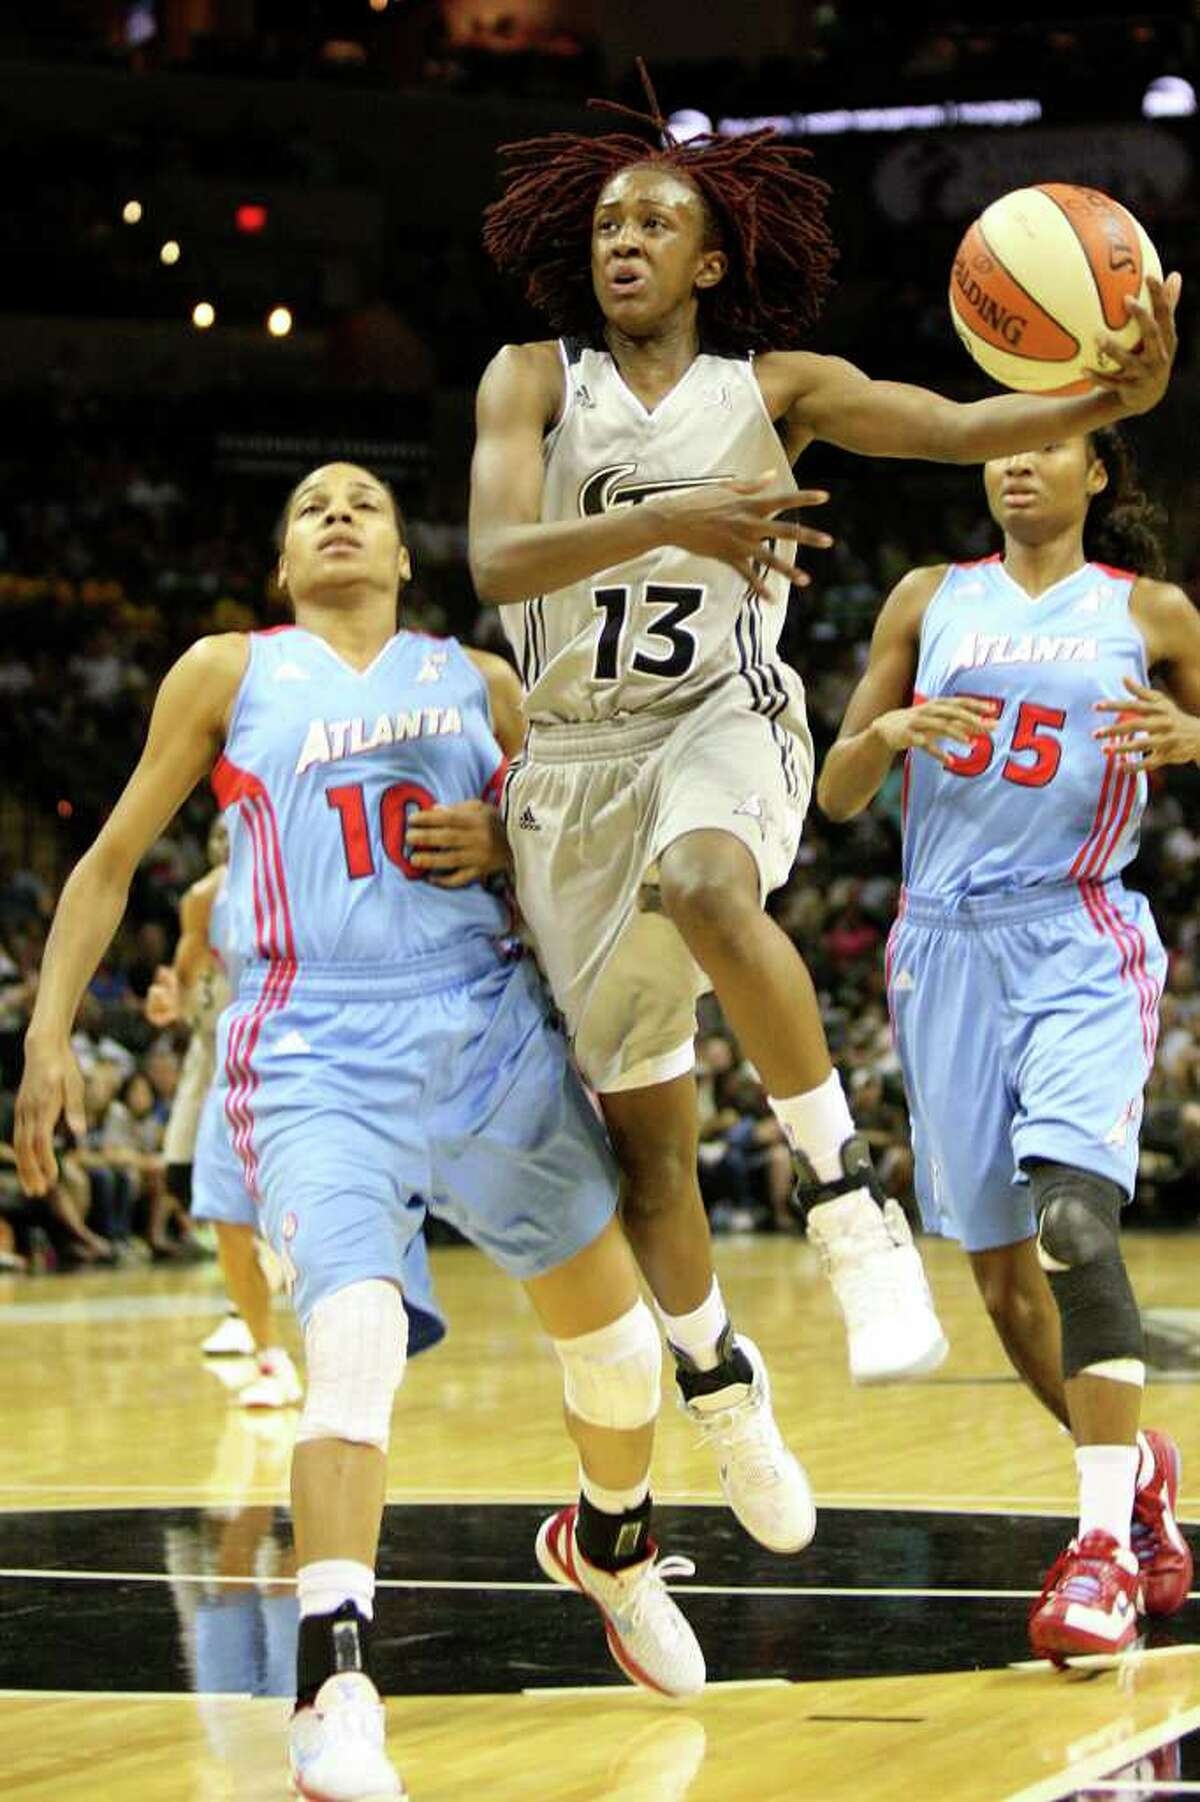 Silver Stars guard Danielle Robinson attempts a layup during the Silver Stars 86-74 win over the Atlanta Dream on June 11, 2011, at AT&T Center. ANDREW BUCKLEY / abuckley@express-news.net